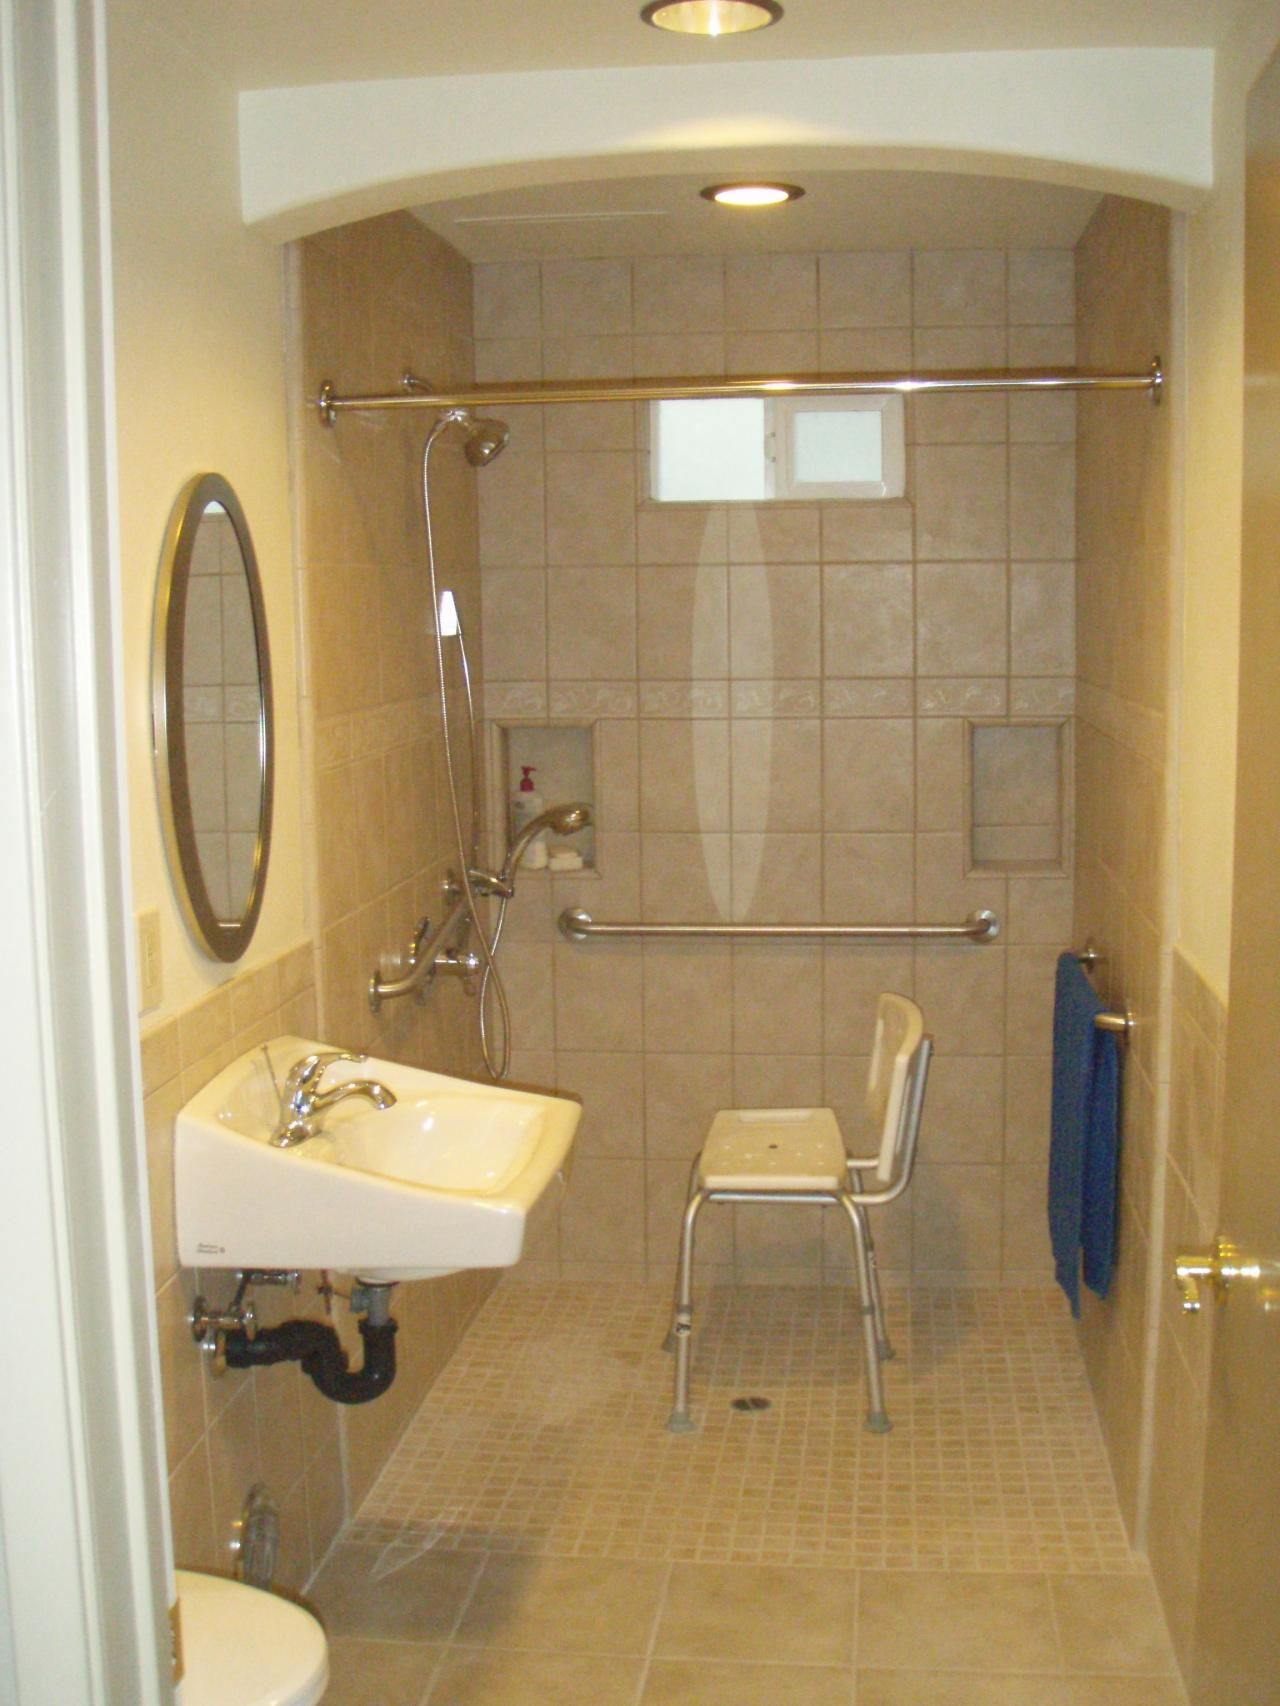 Bathroom remodels for handicapped handicapped bathroom ms hayashi torrance 11 09 bathroom - Handicapped accessible bathroom plans ...